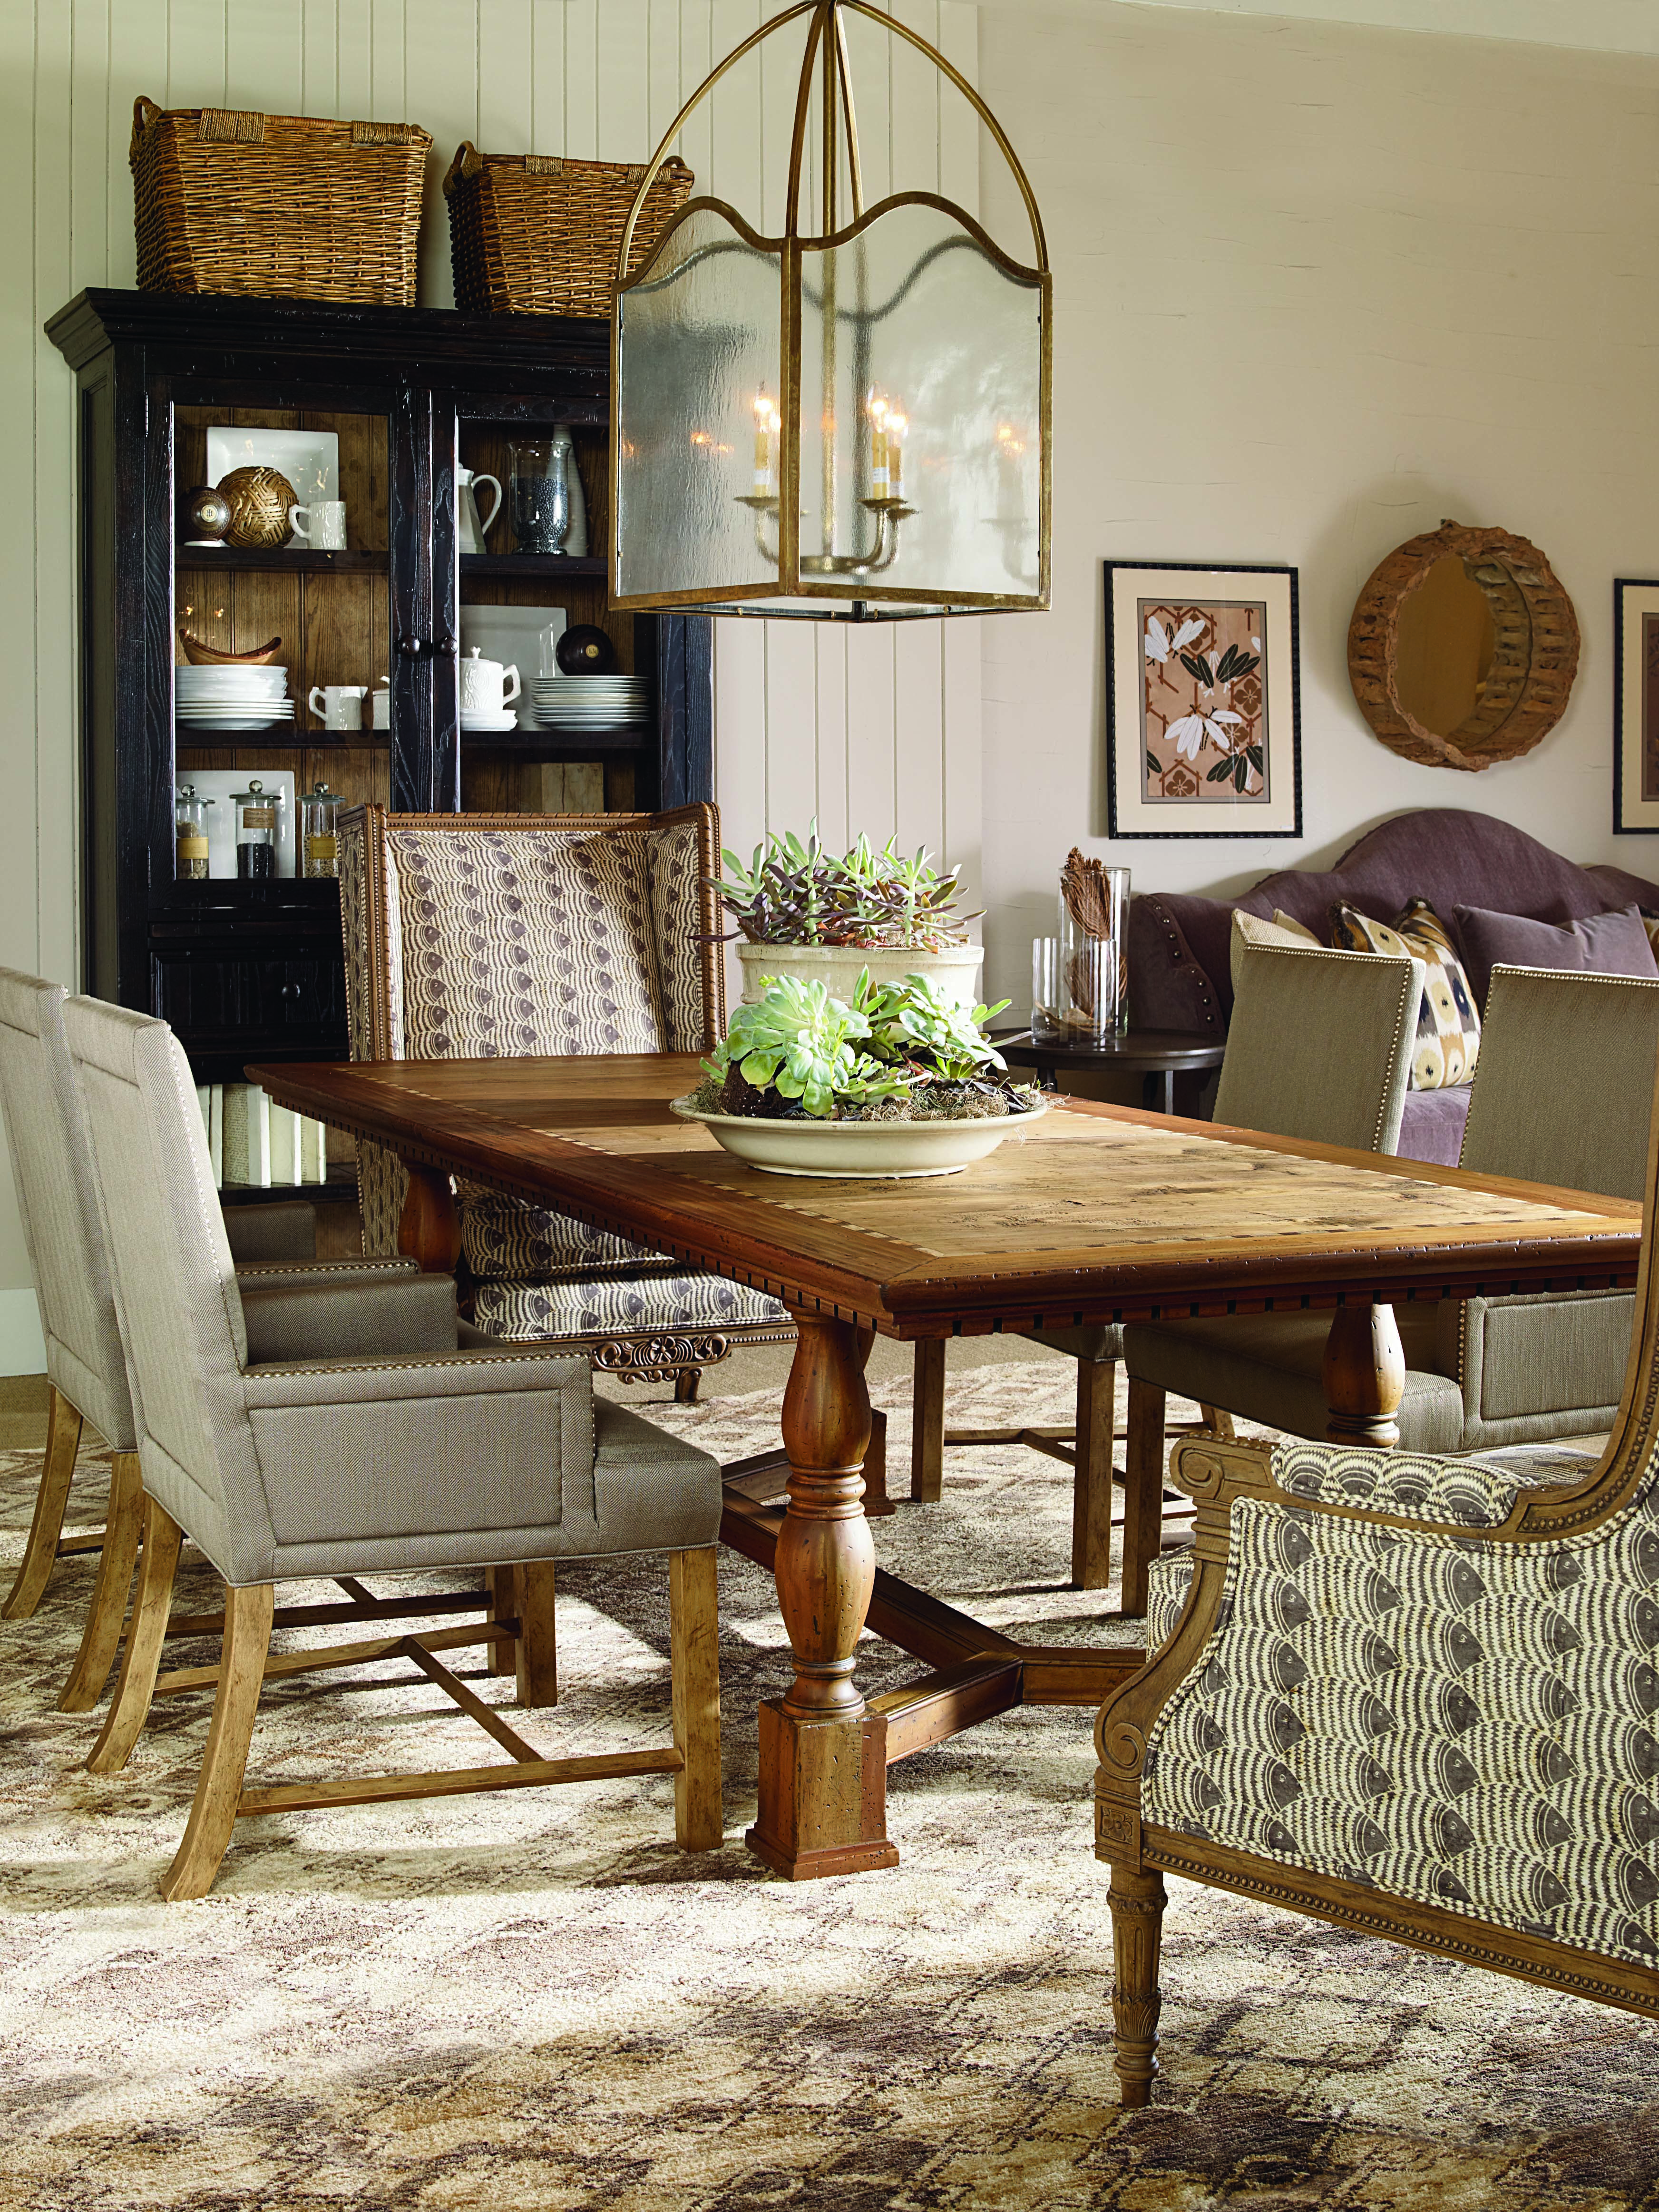 Marbella 669 301 in natural finish dining room furniture dining room tables